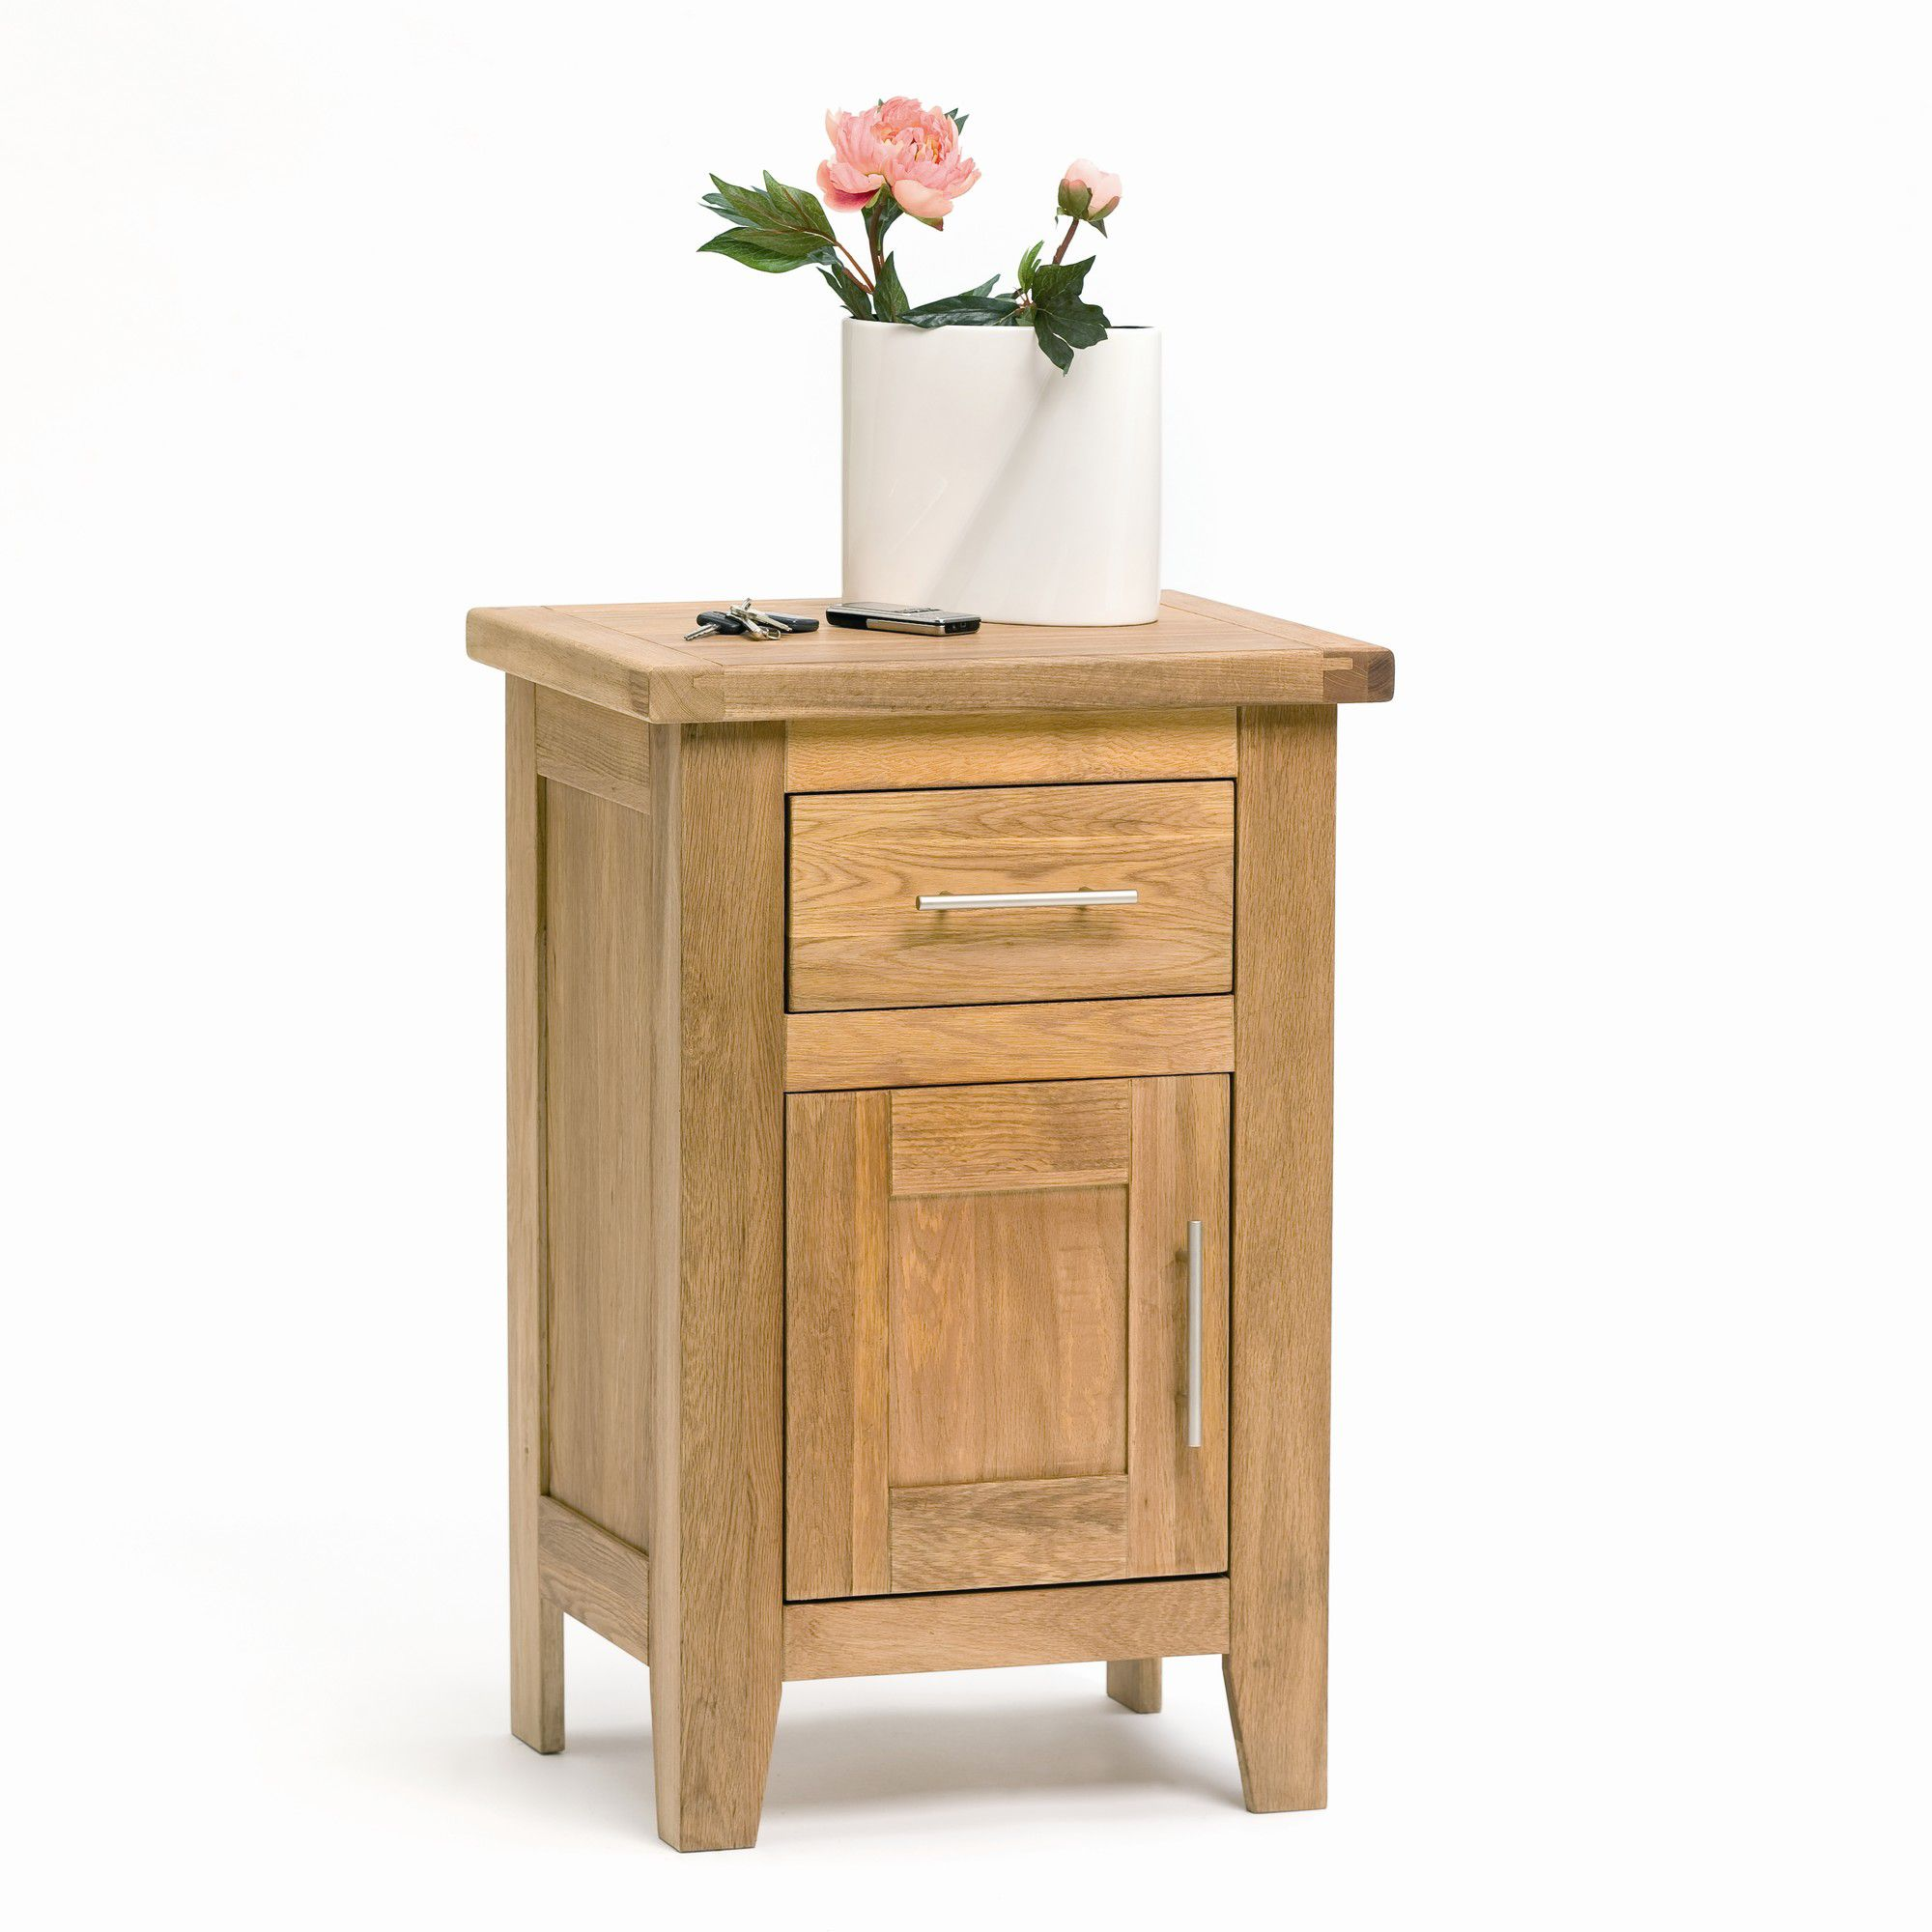 Oestergaard Provence Chest of Drawers - 125cm at Tesco Direct